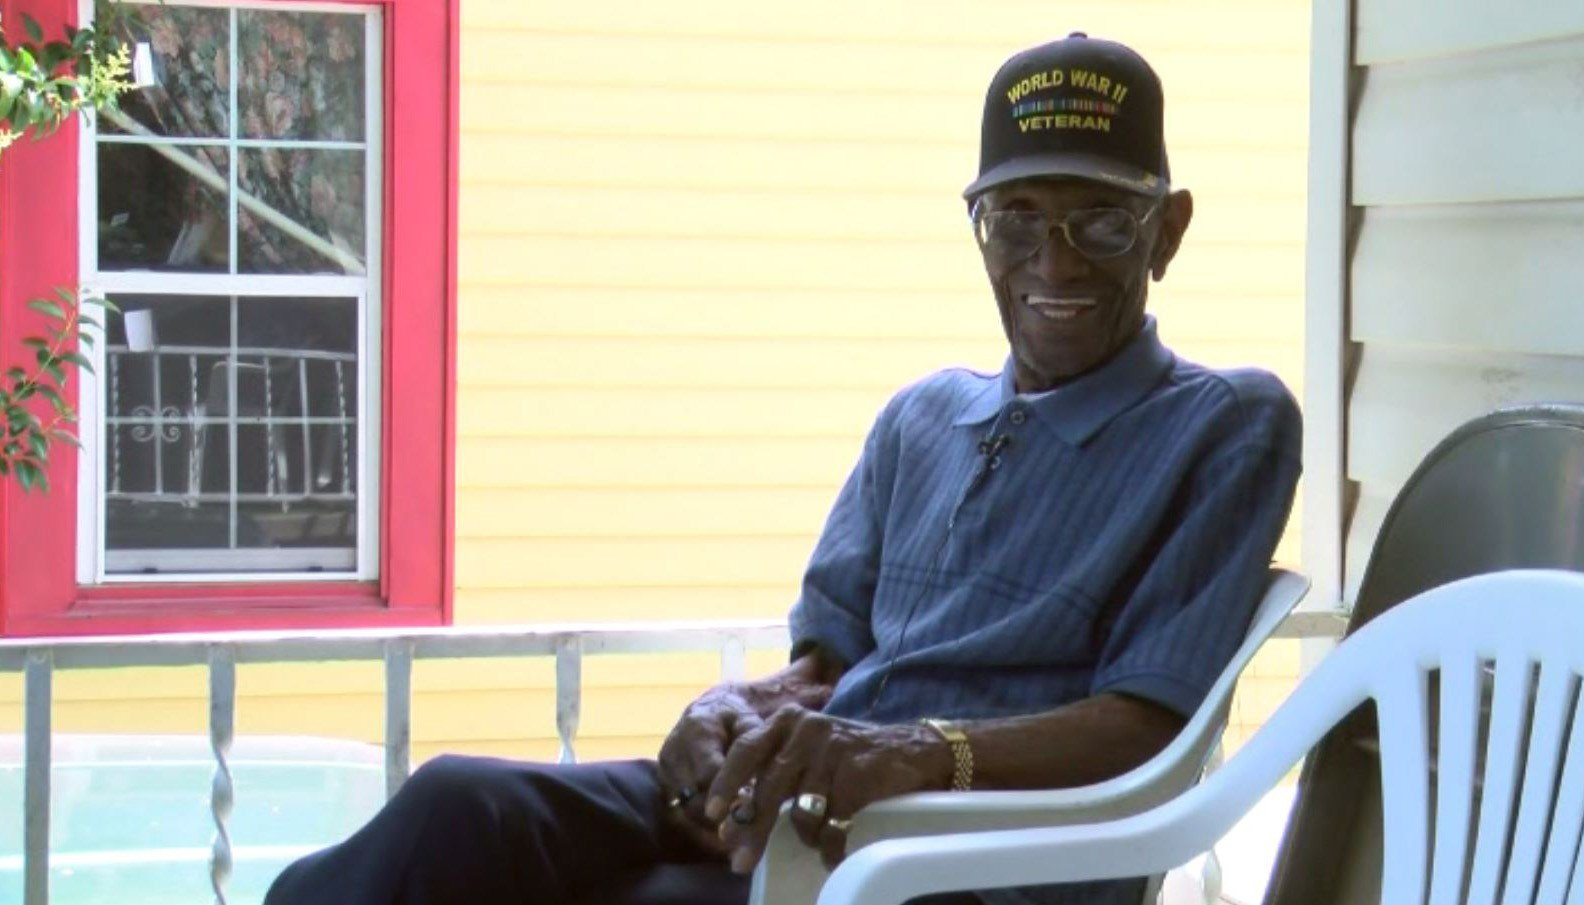 Identity thief drains funds of 112-year-old WWII vet